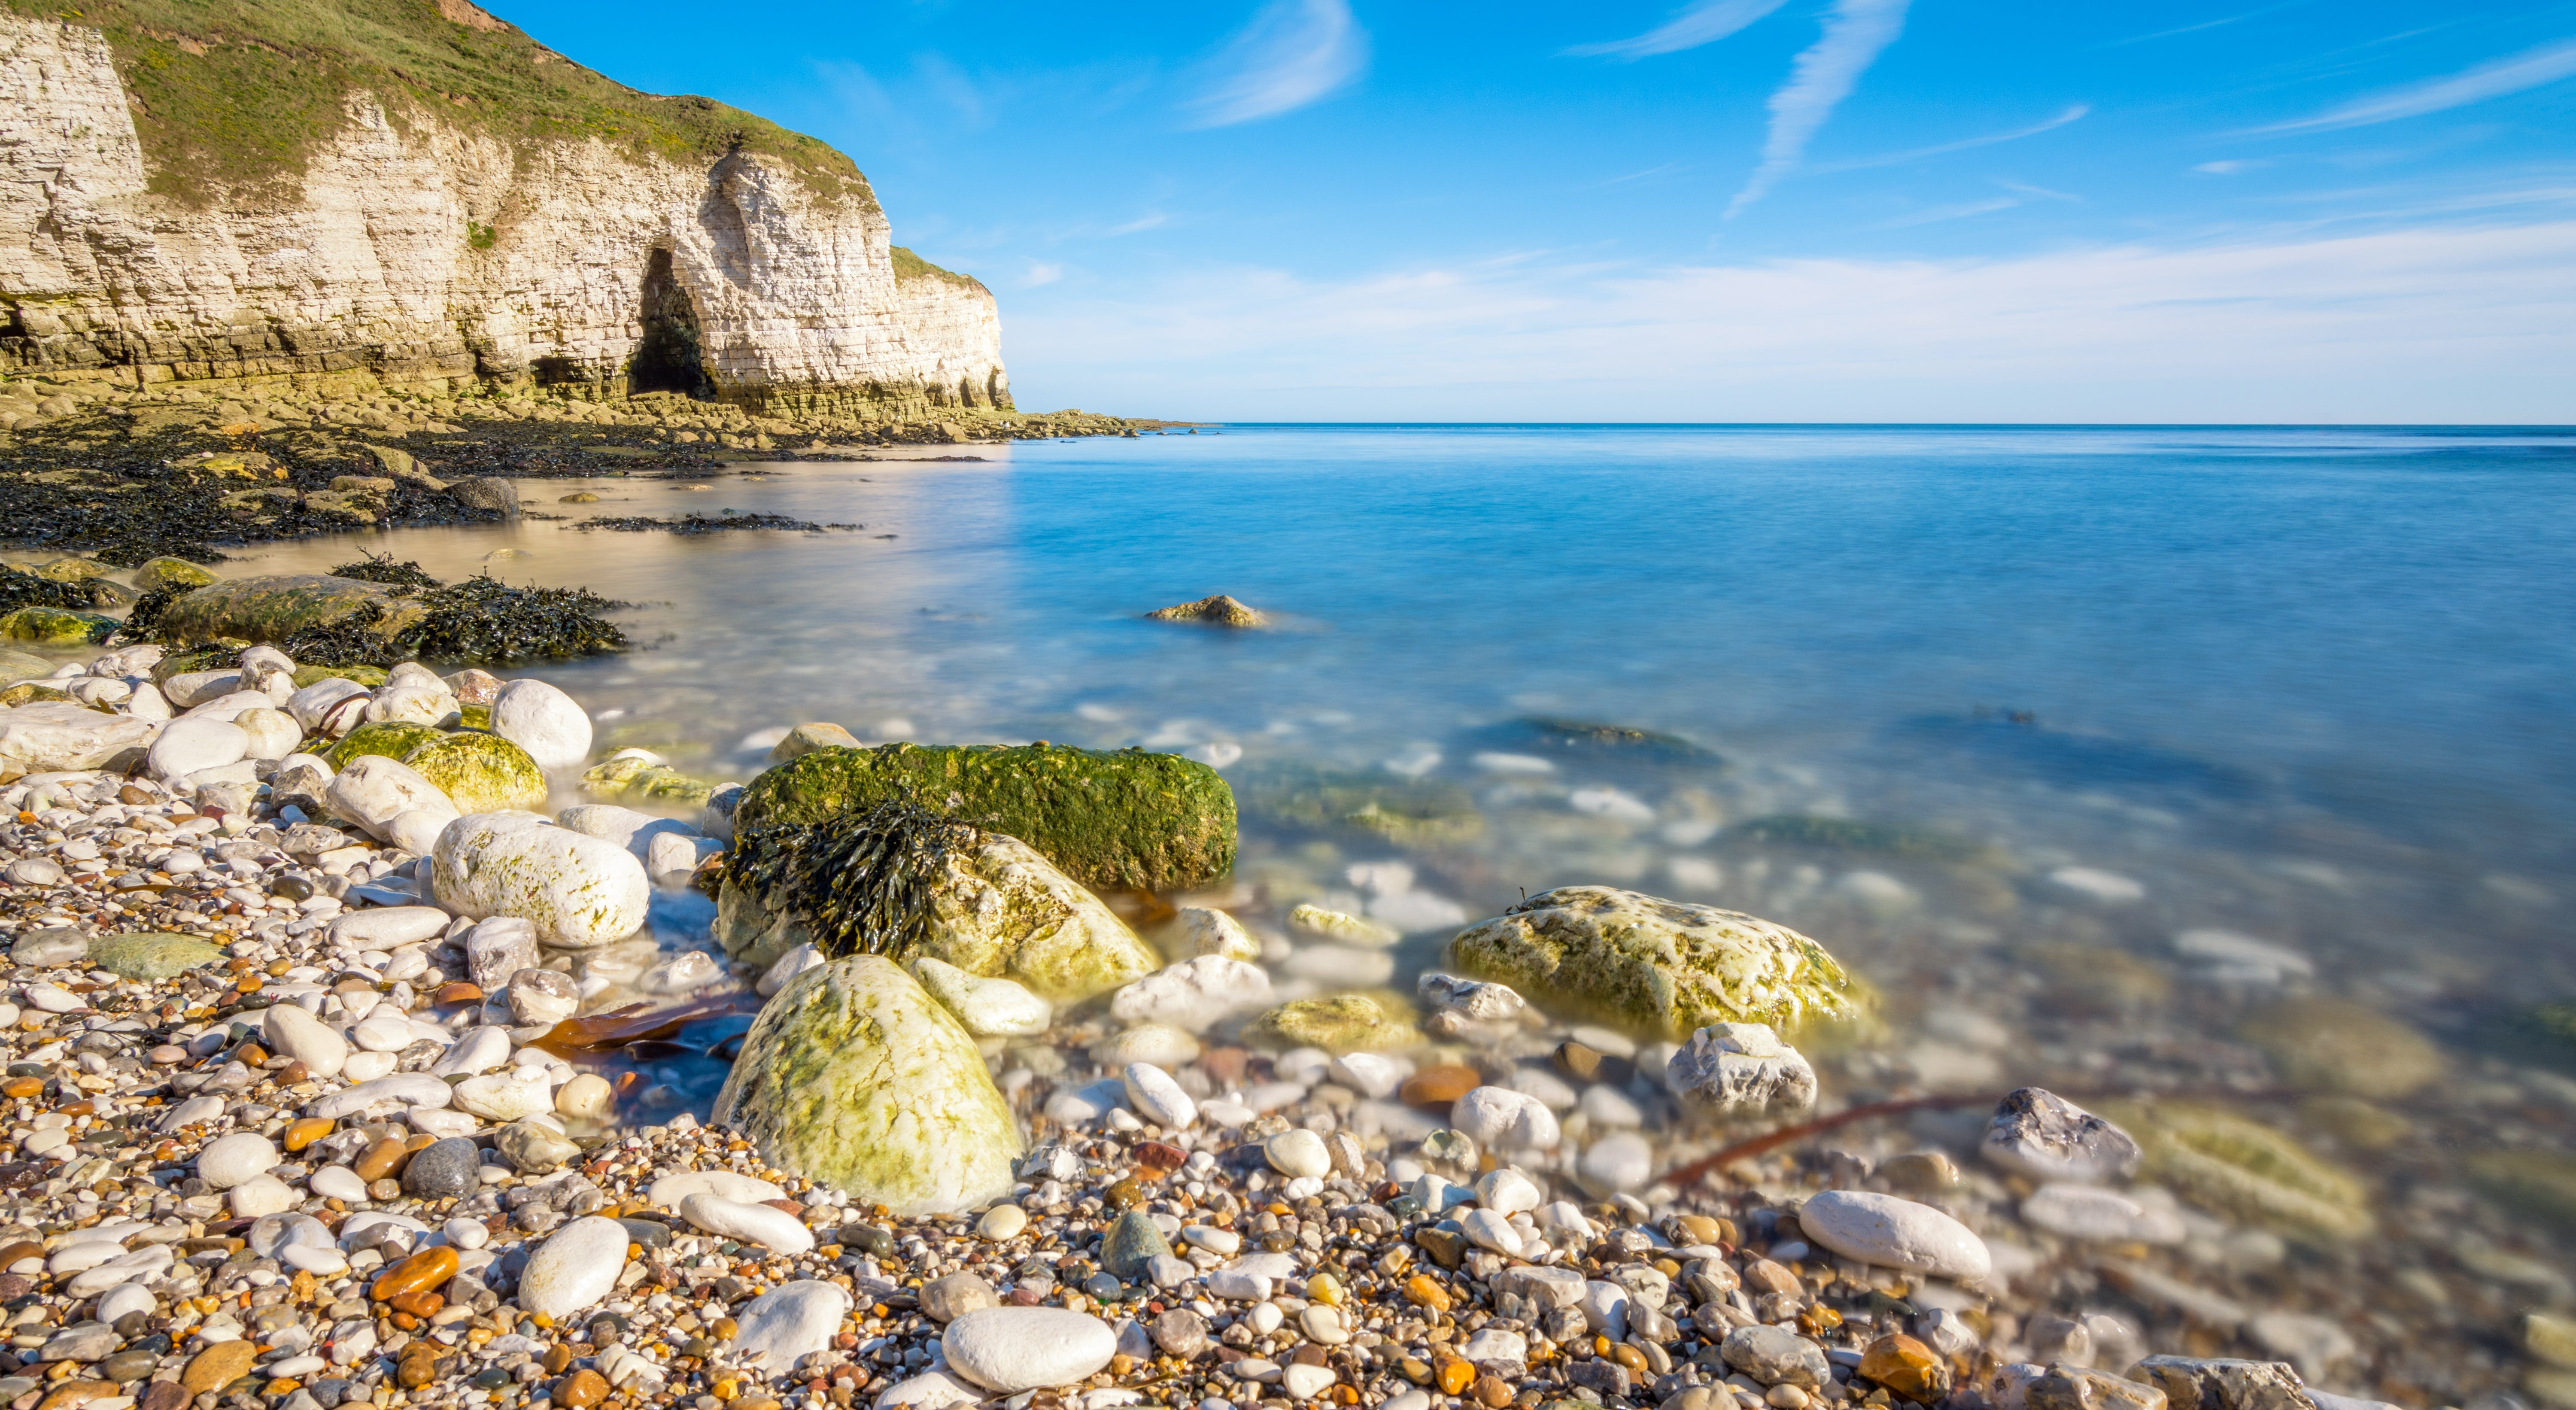 Landscape Photography of Cliffs and Body of Water